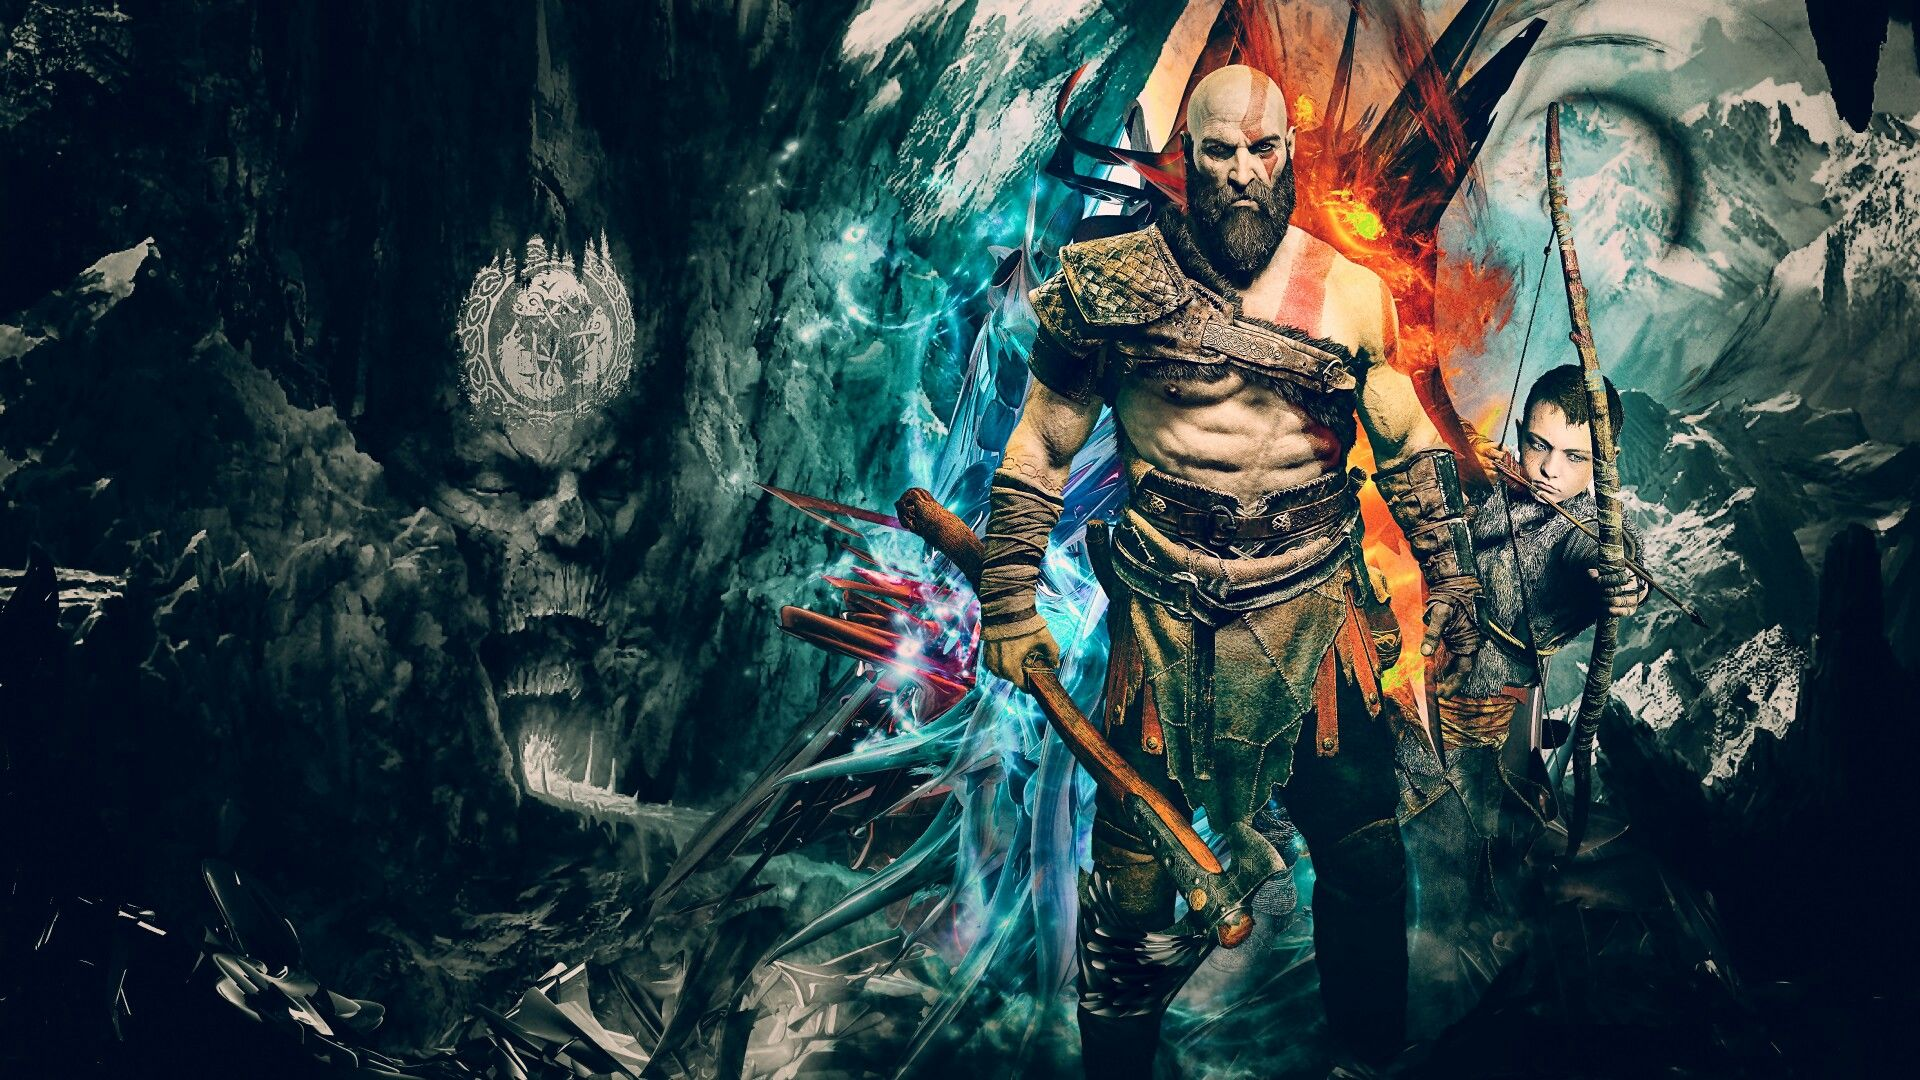 Pin By I M All Yours On Gwd Wғ Shdr Kratos God Of War God Of War 3840x2160 Wallpaper